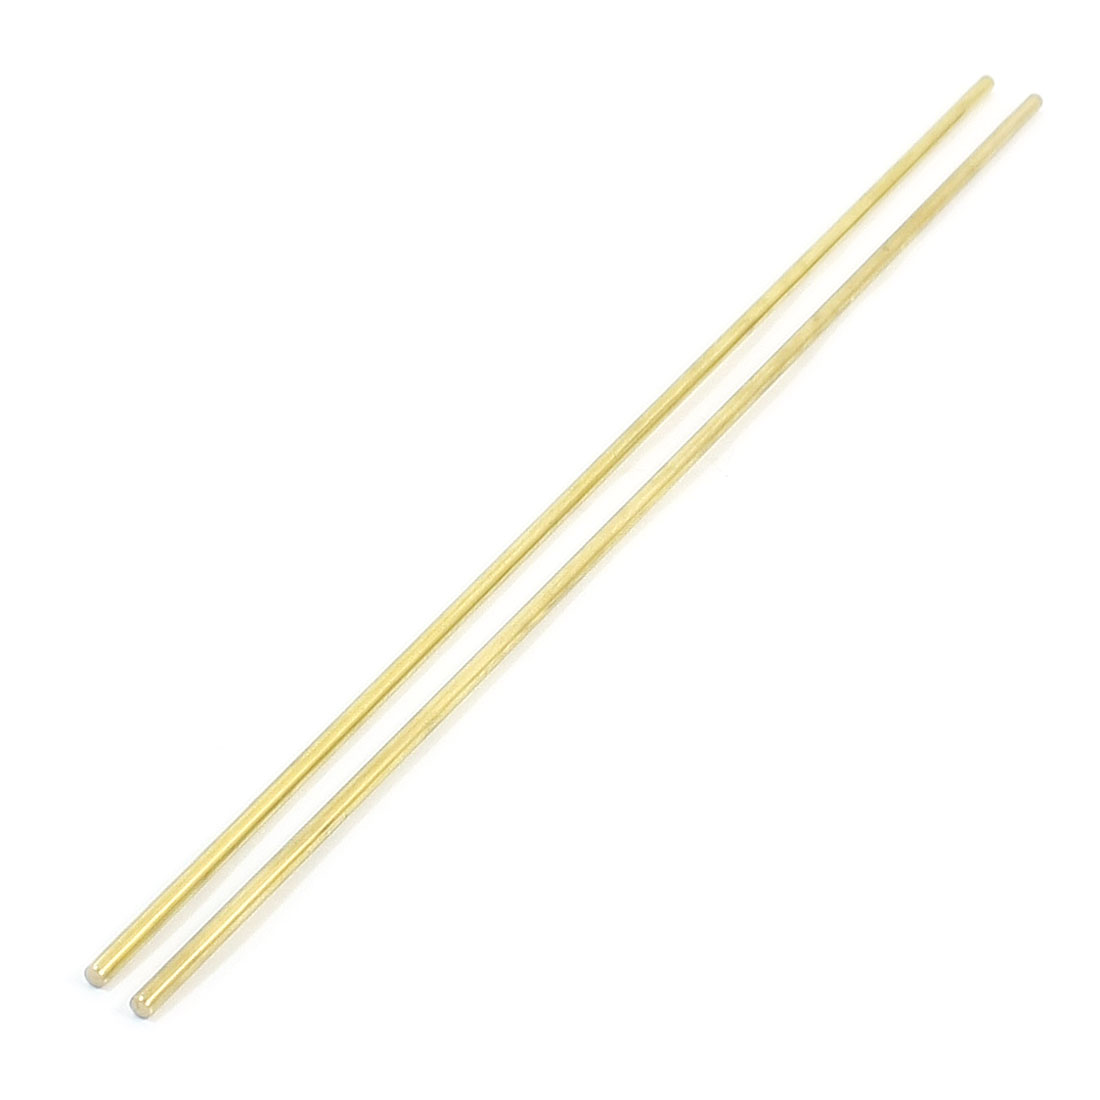 2Pcs Gold Tone Brass 250mm x 3mm Round Rod Stock for CNC Lathe Machine